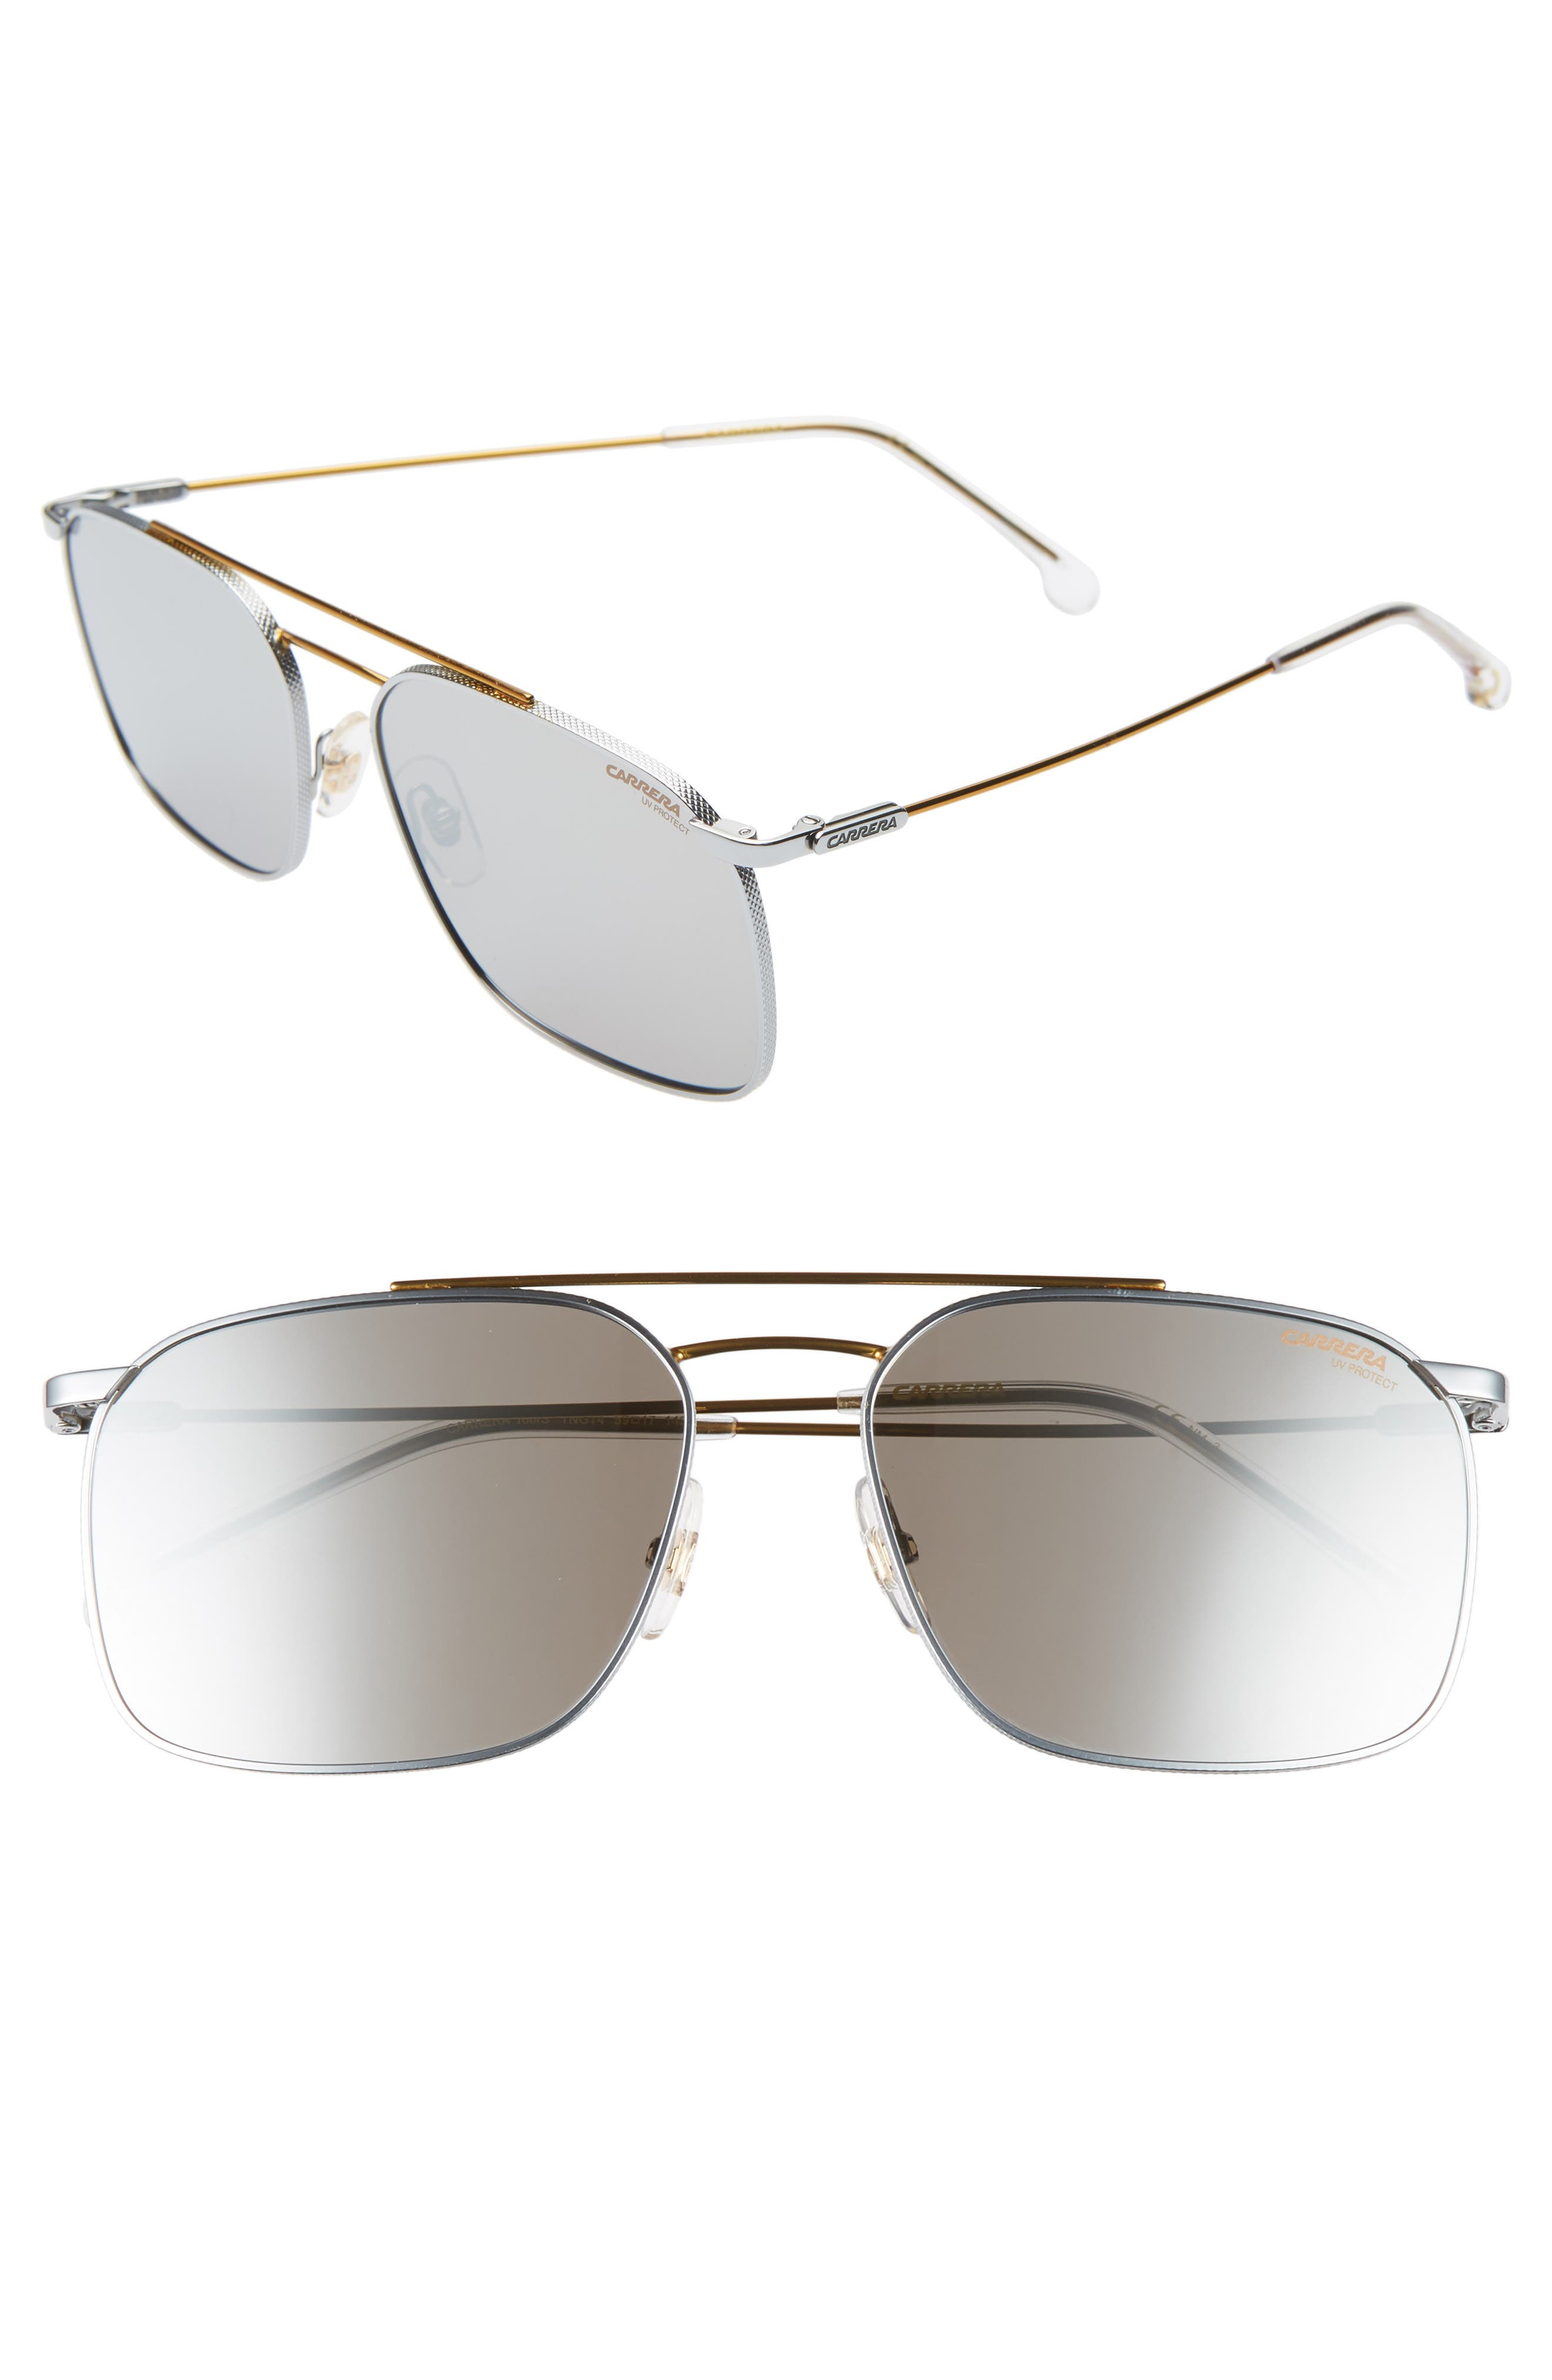 Carrera Eyewear 5m Aviator Sunglasses - Palladium Gold